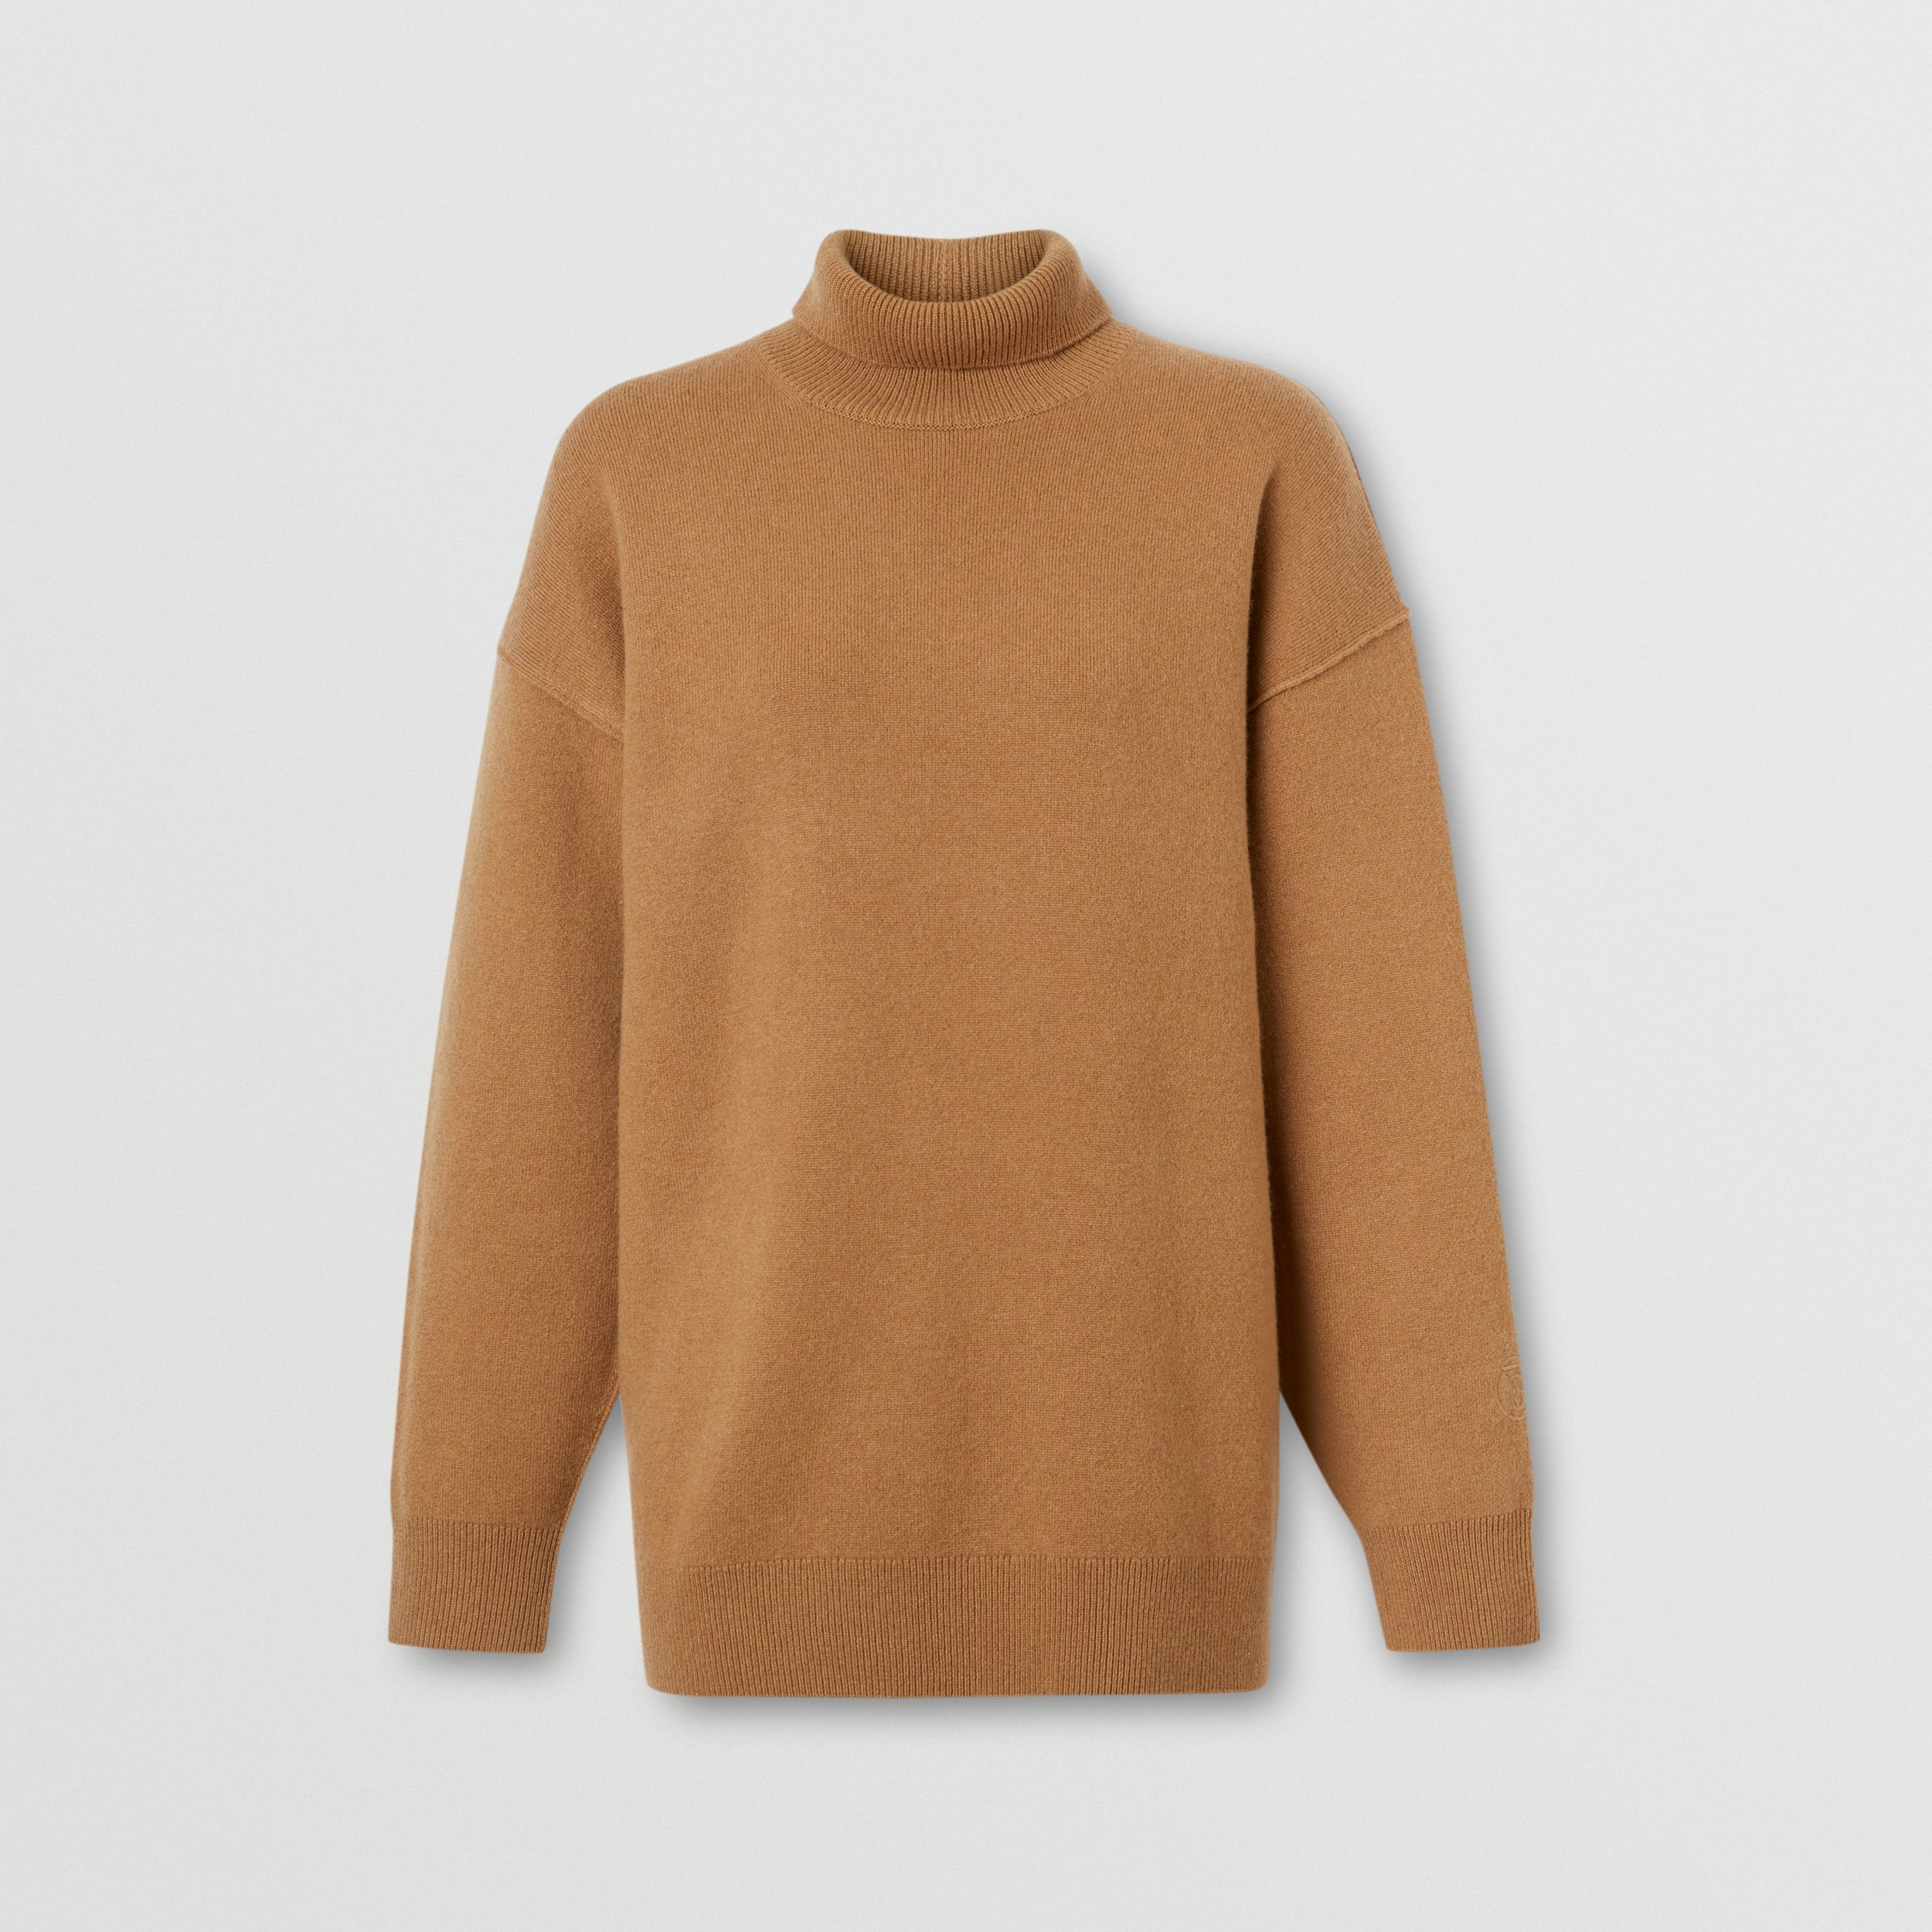 Monogram Motif Cashmere Blend Funnel Neck Sweater in Camel - Women | Burberry - 3